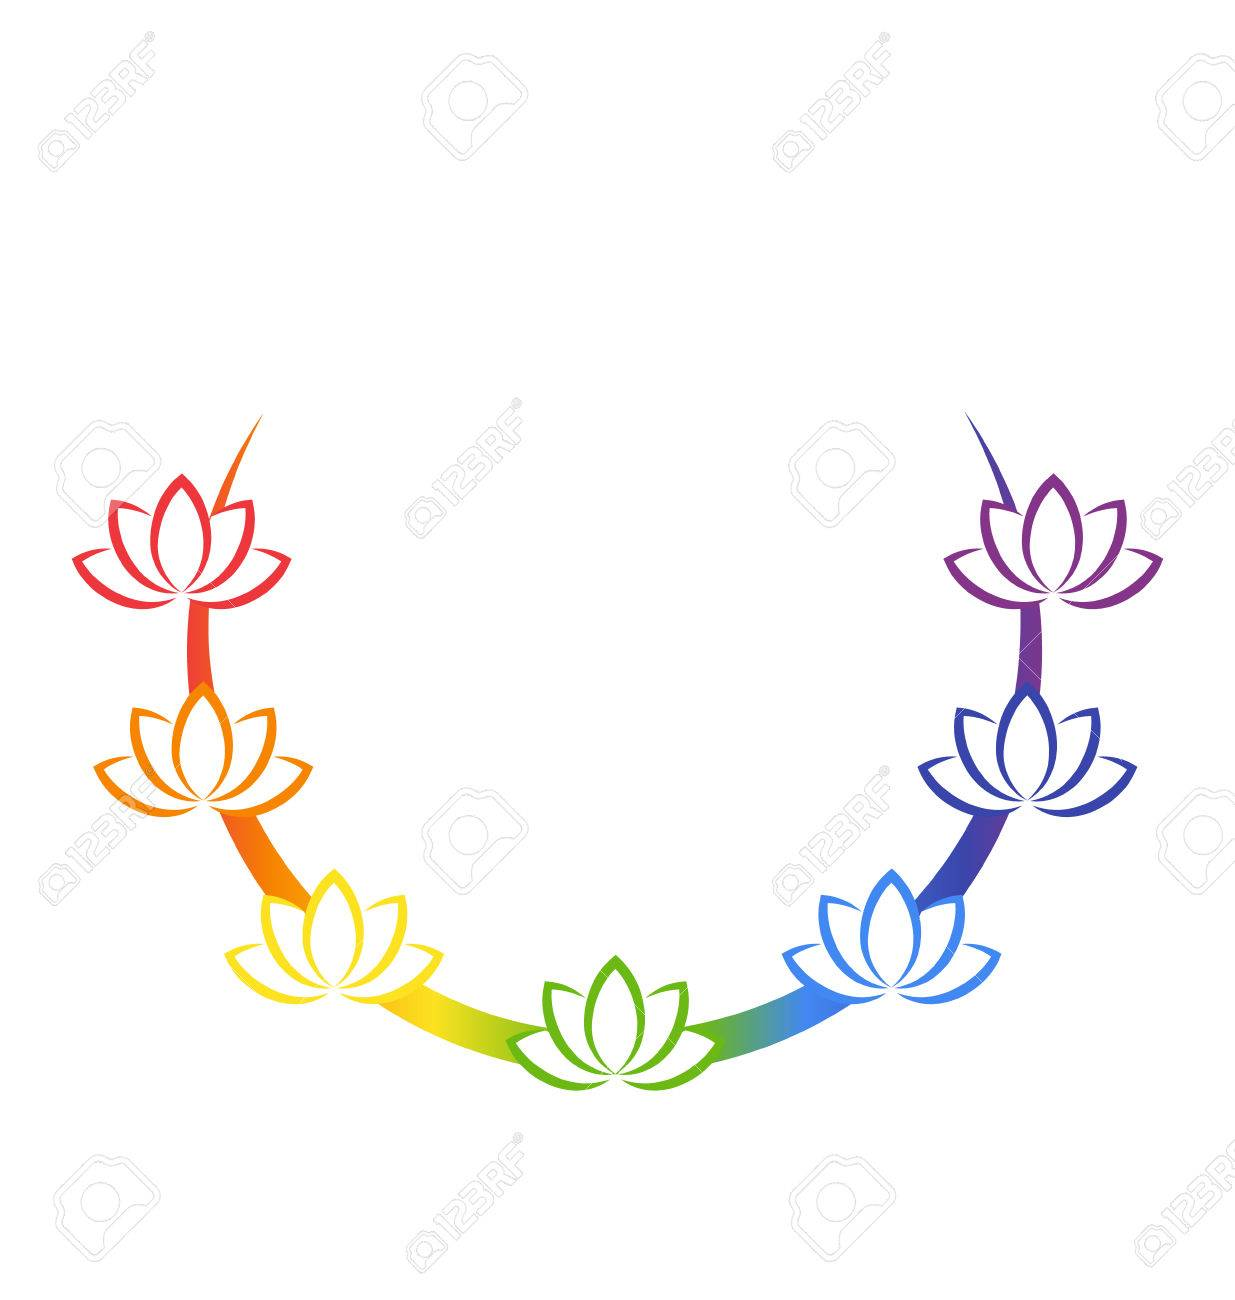 Yoga emblem with abstract chakra lotuses isolated on white background - 37832972